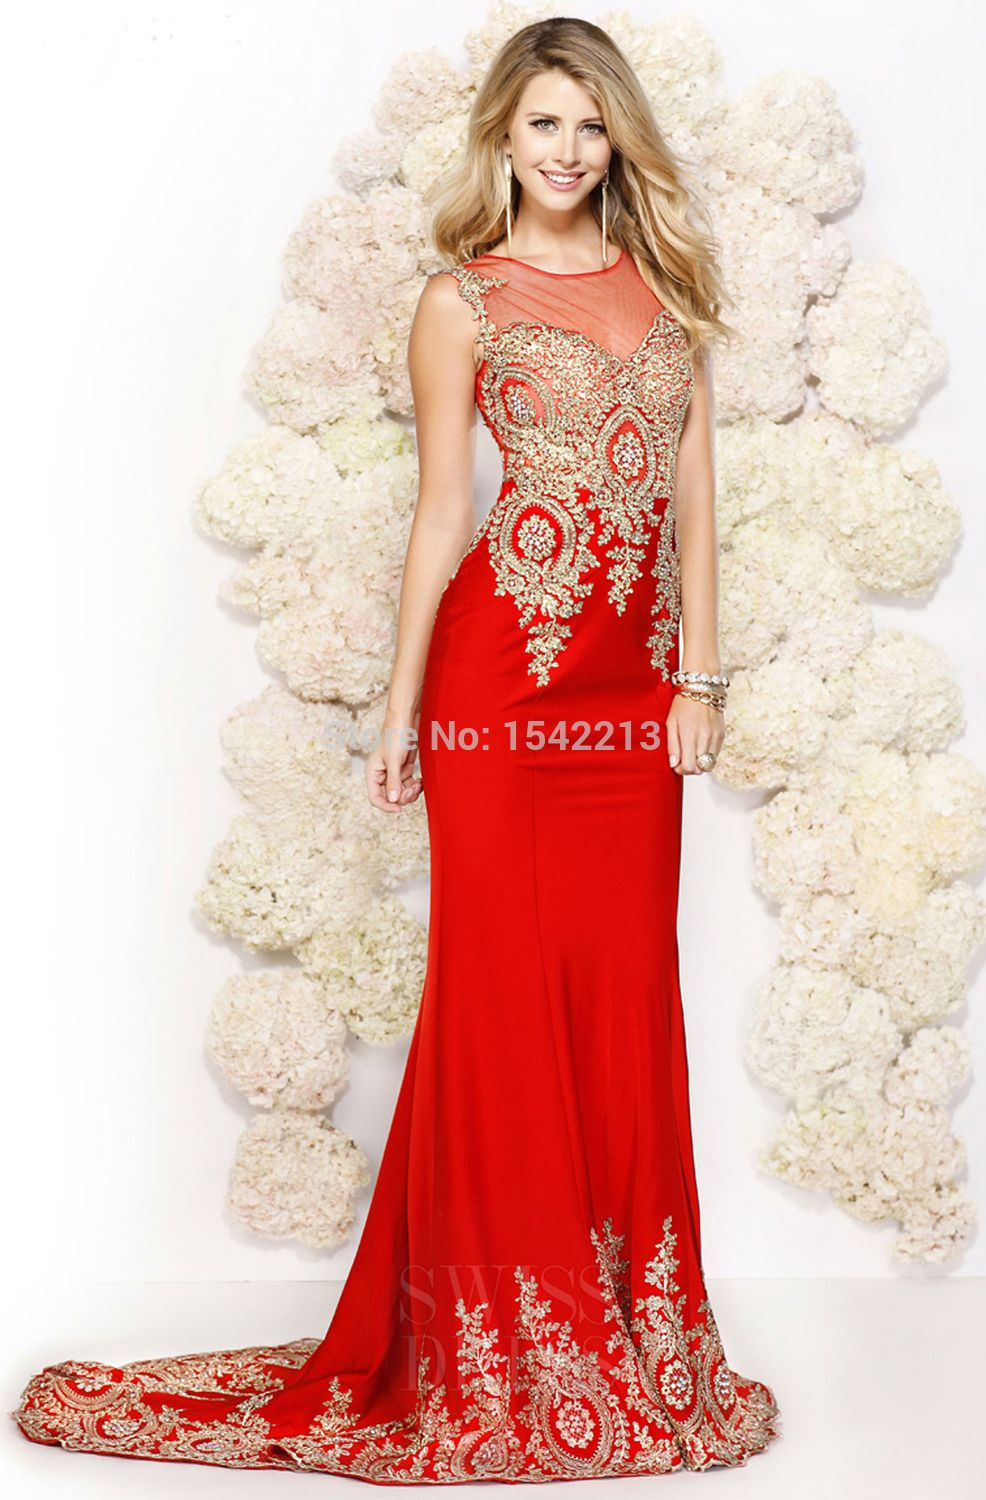 Black red mermaid evening dress heavy lace beaded crystal prom